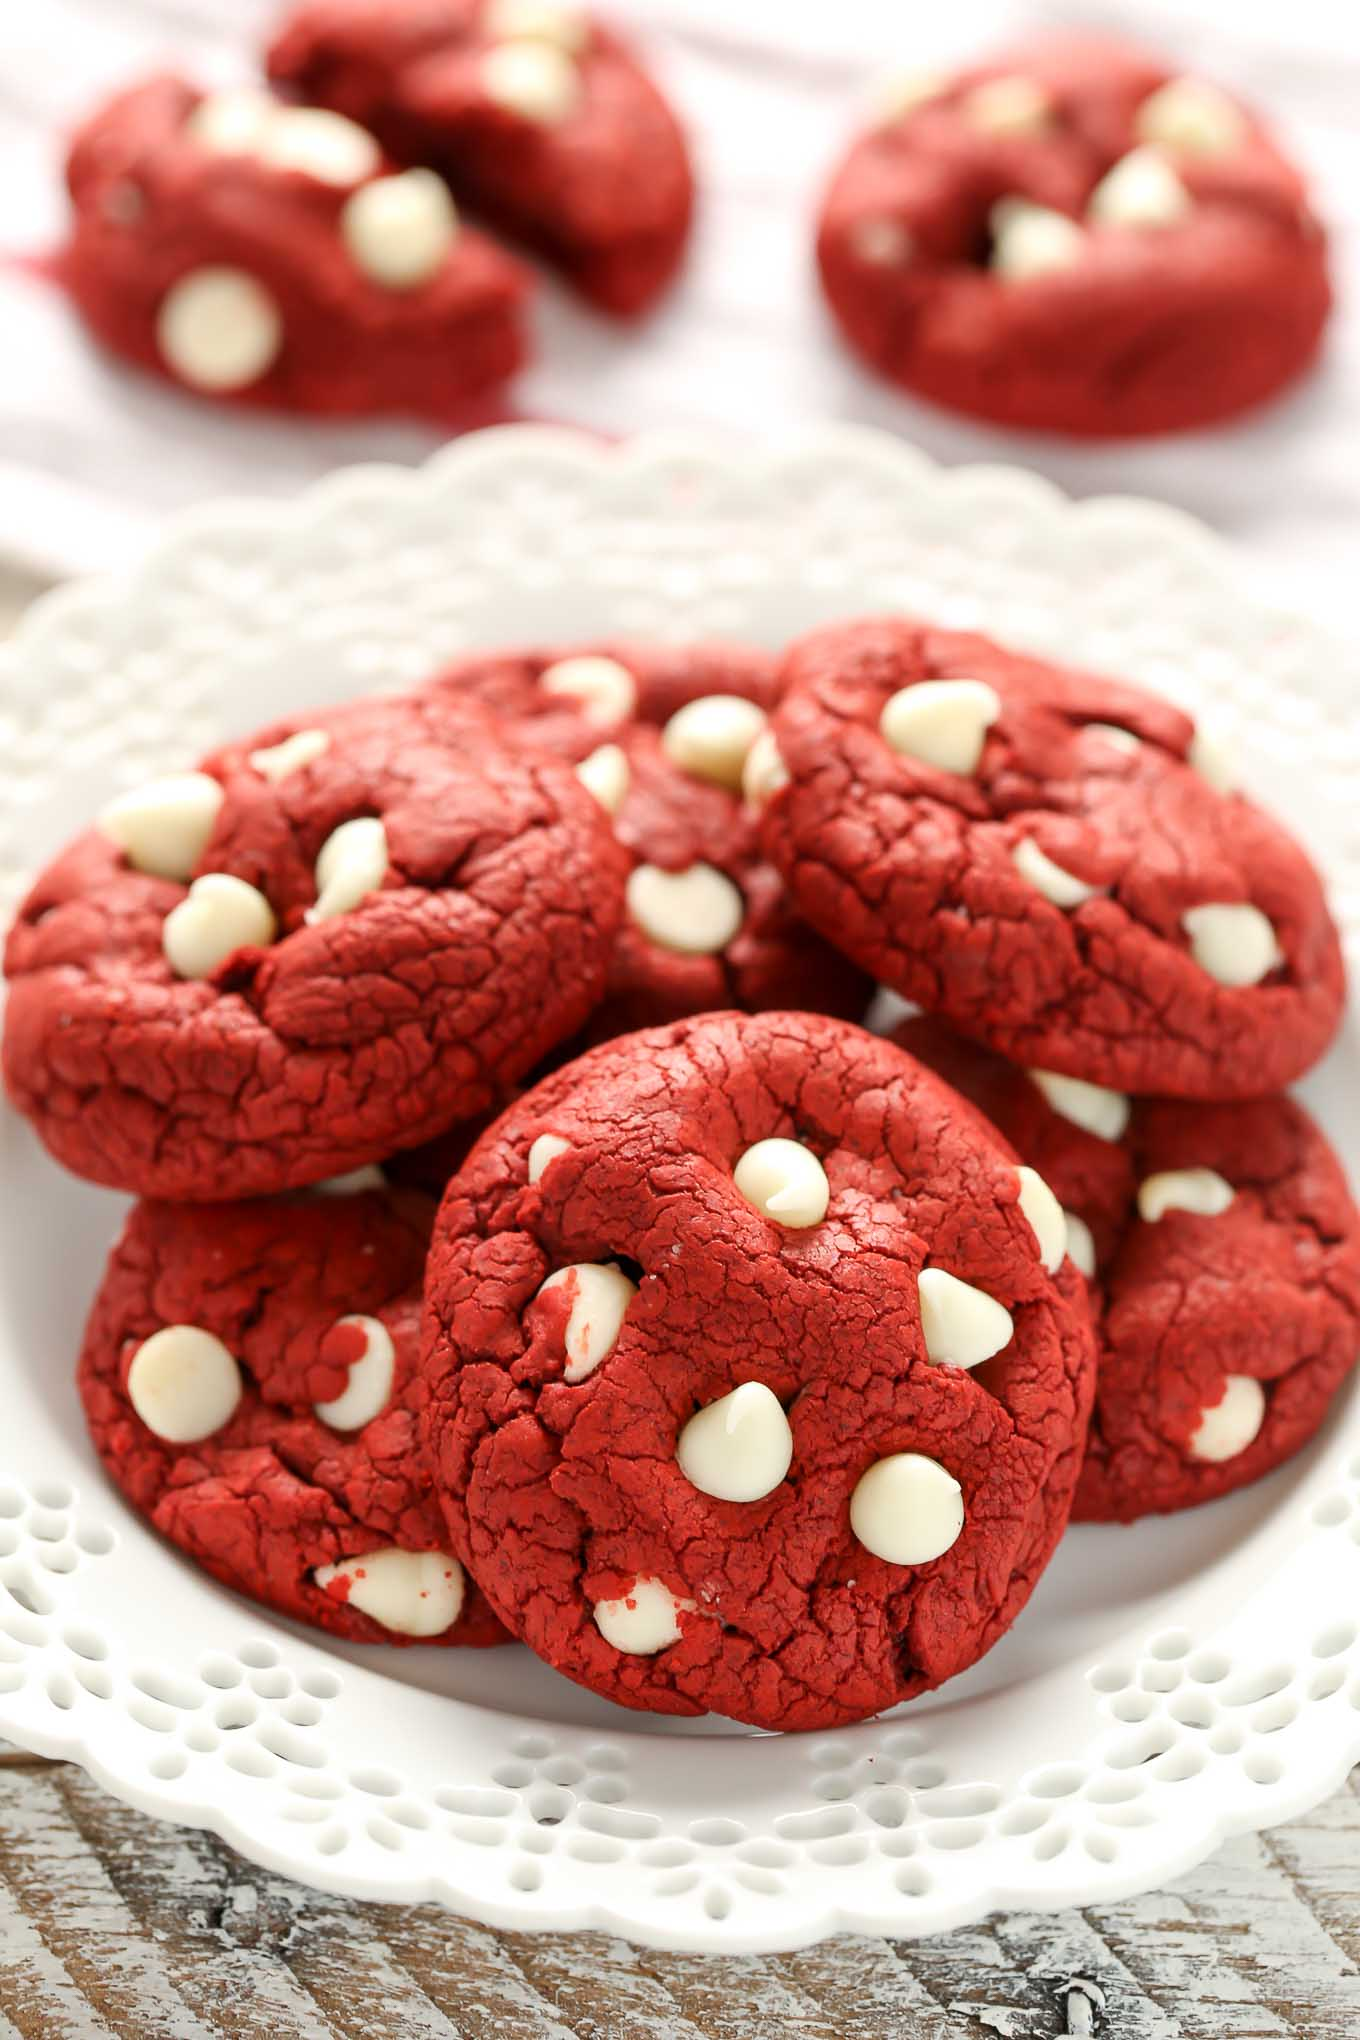 These Easy Red Velvet Cake Mix Cookies only require 4 simple ingredients and are ready in less than 30 minutes. These cookies are the perfect easy treat for Valentine's Day too!